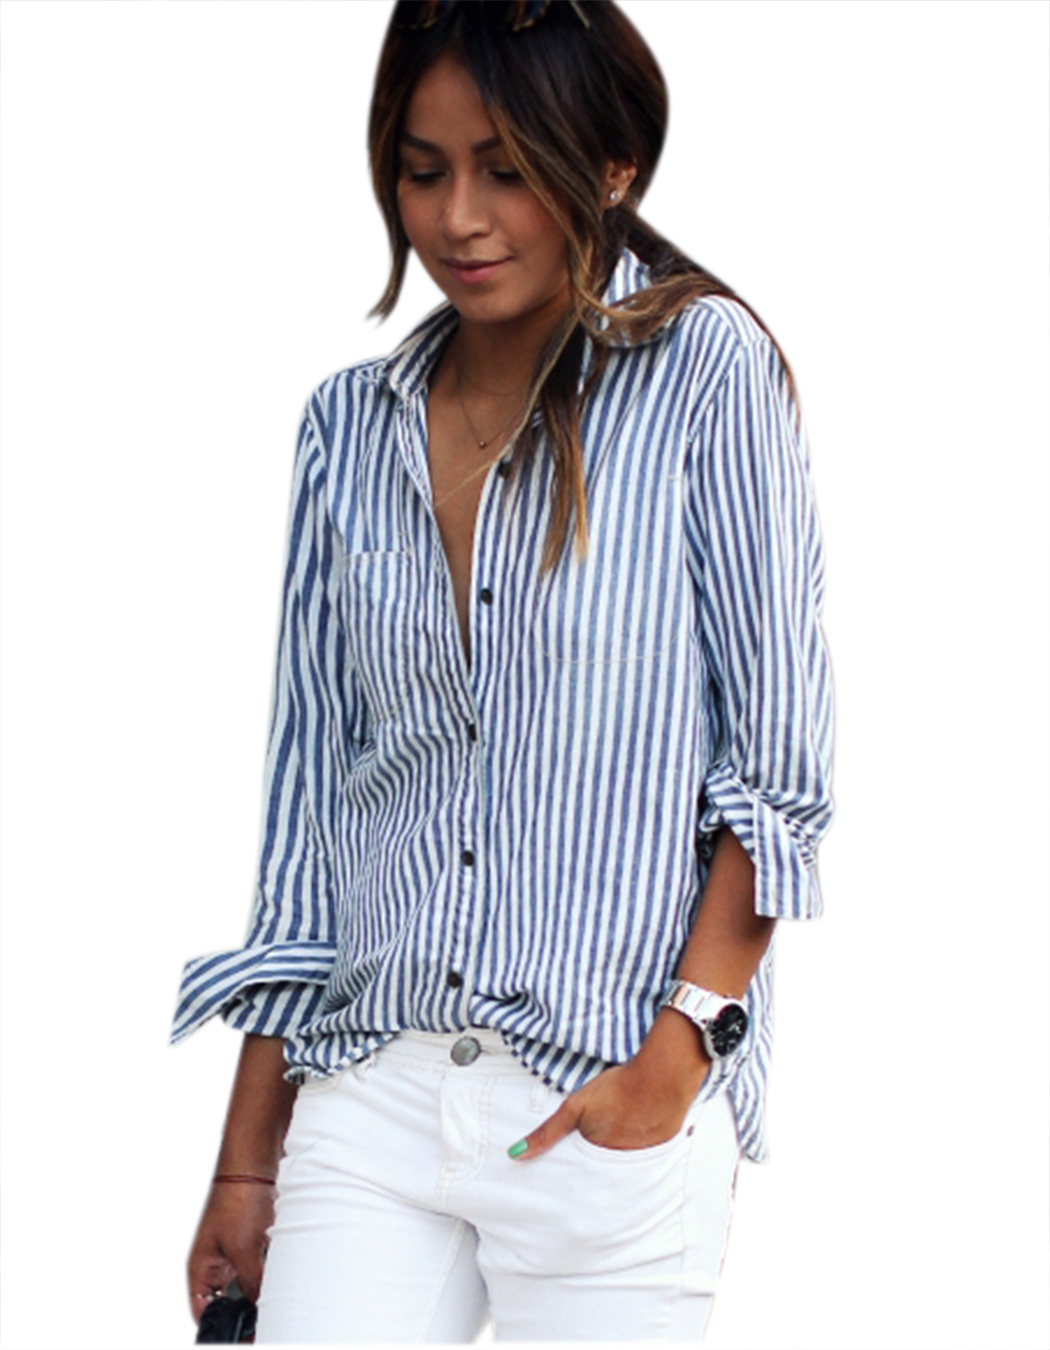 Compare Prices on Blue Top- Online Shopping/Buy Low Price Blue Top ...